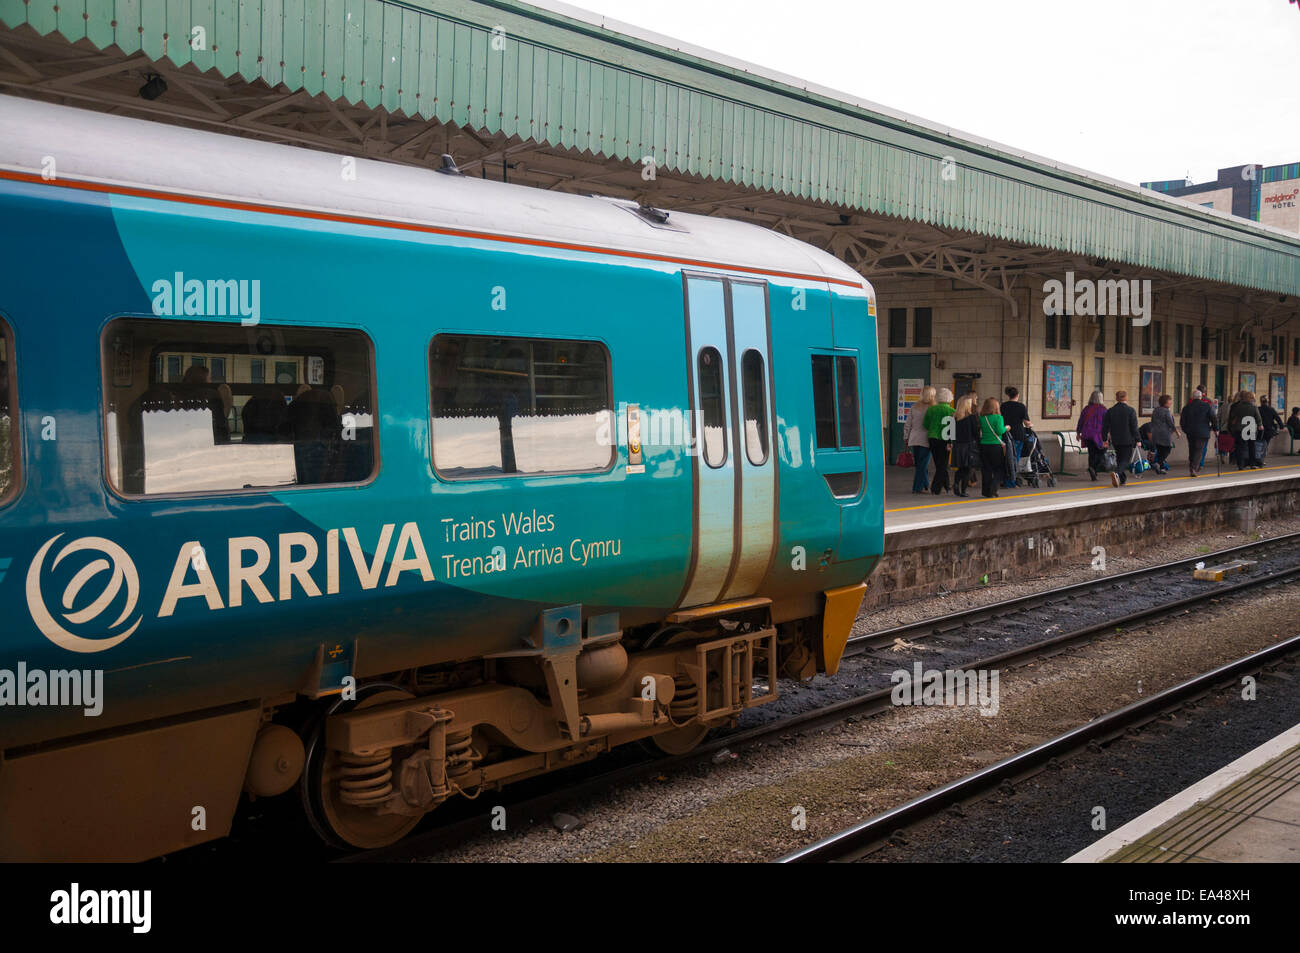 Arriva local commuter train stands at Cardiff Central Station in Wales UK Stock Photo